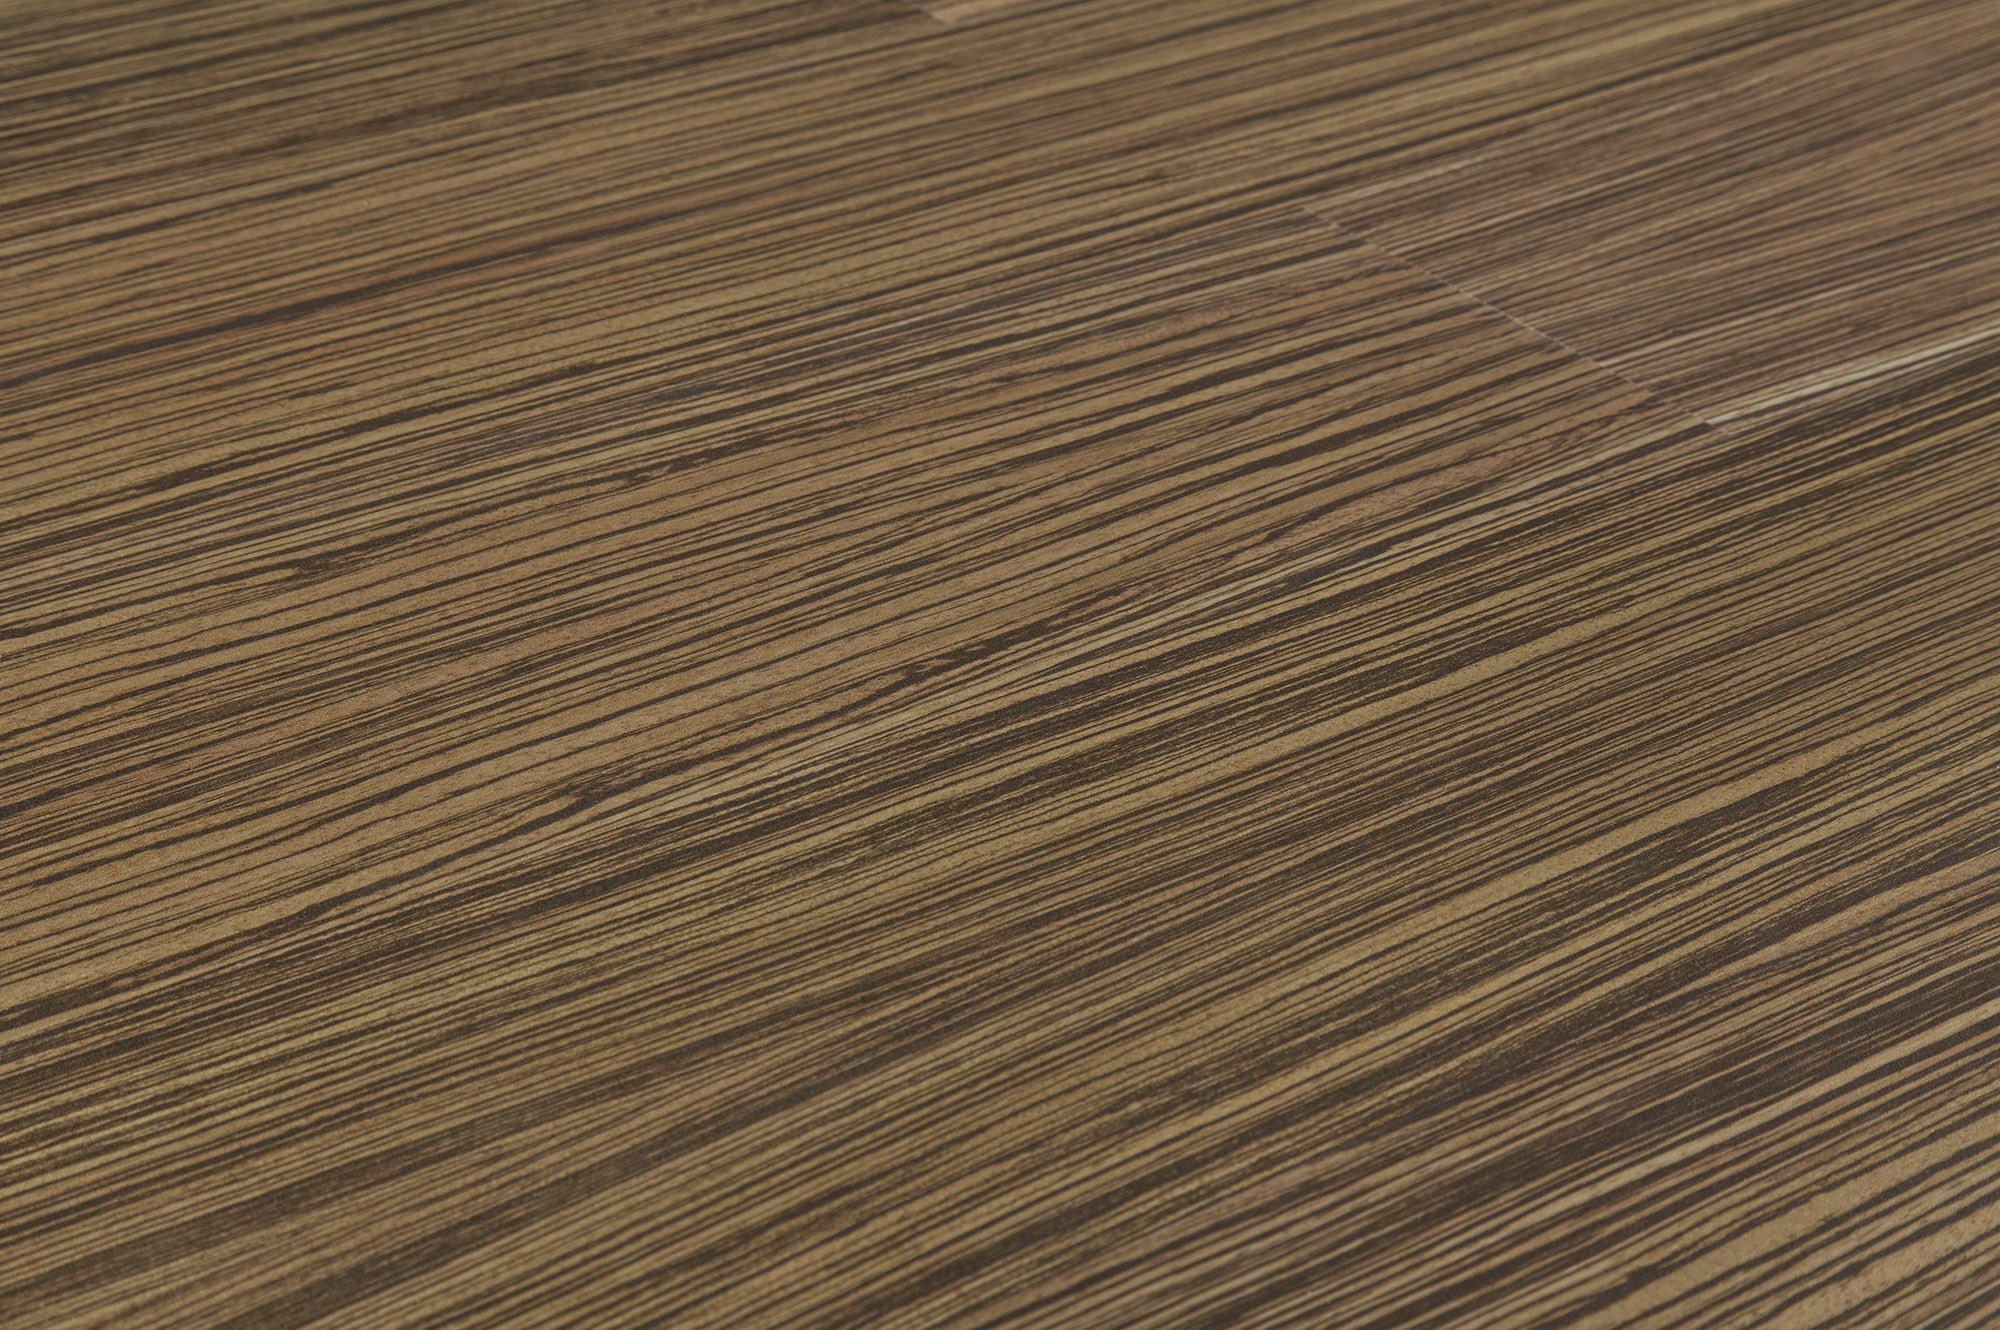 Evora Pallets Cork - DigiWood Narrow Plank Collection ...